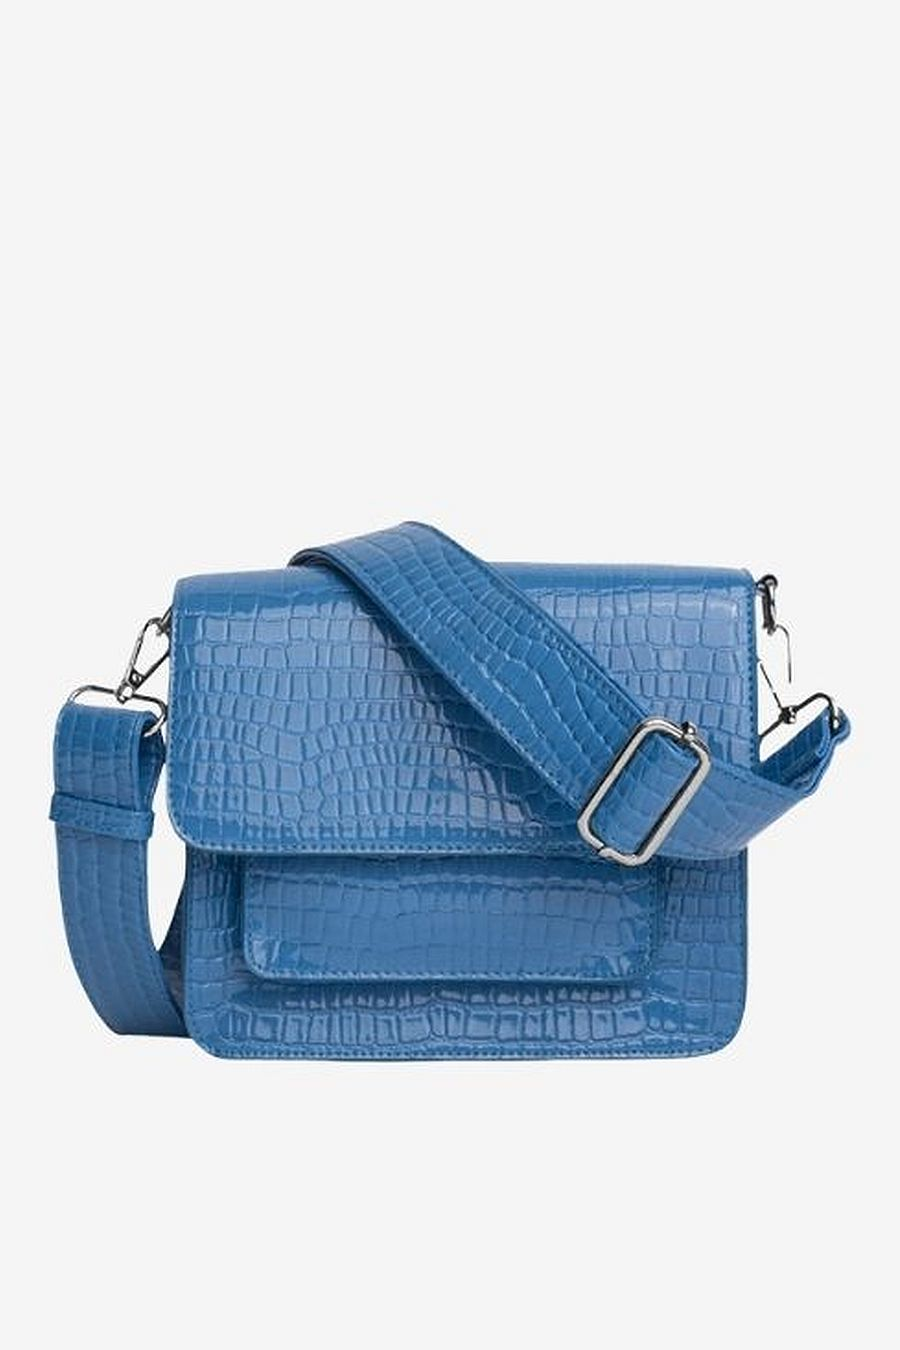 HVISK Cayman Pocket - Blue